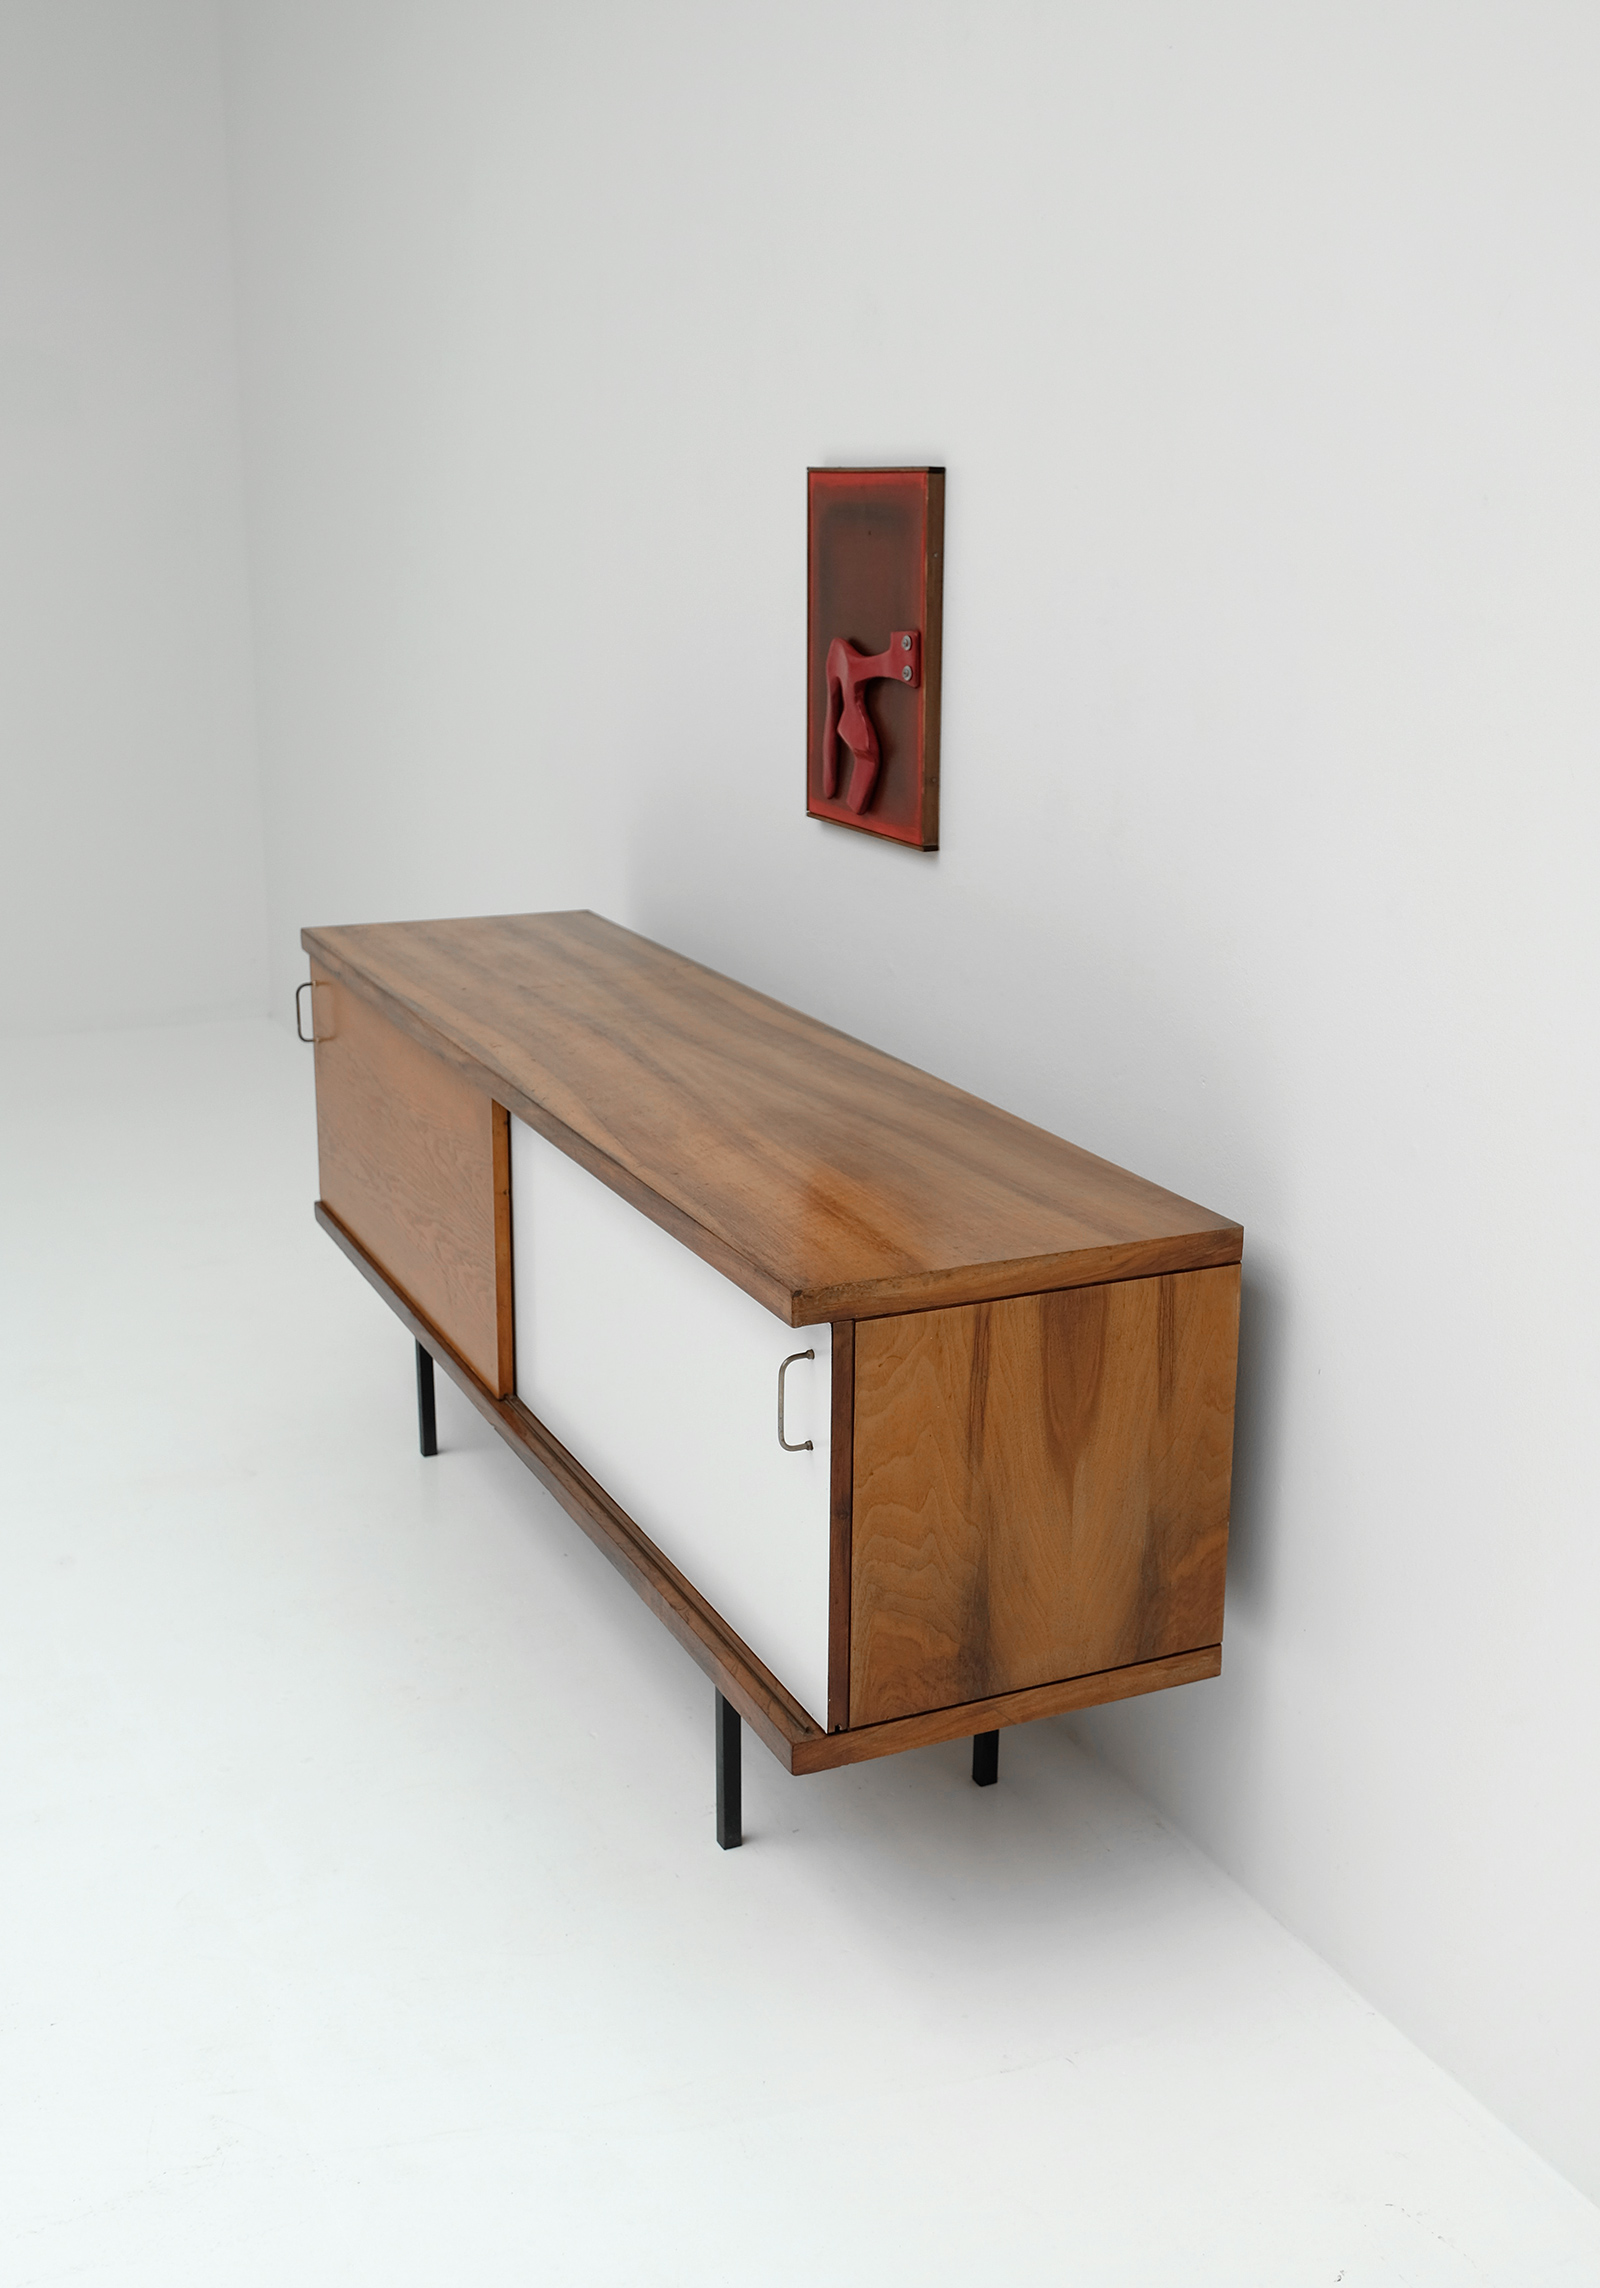 Jos De Mey for Luxus Sideboard